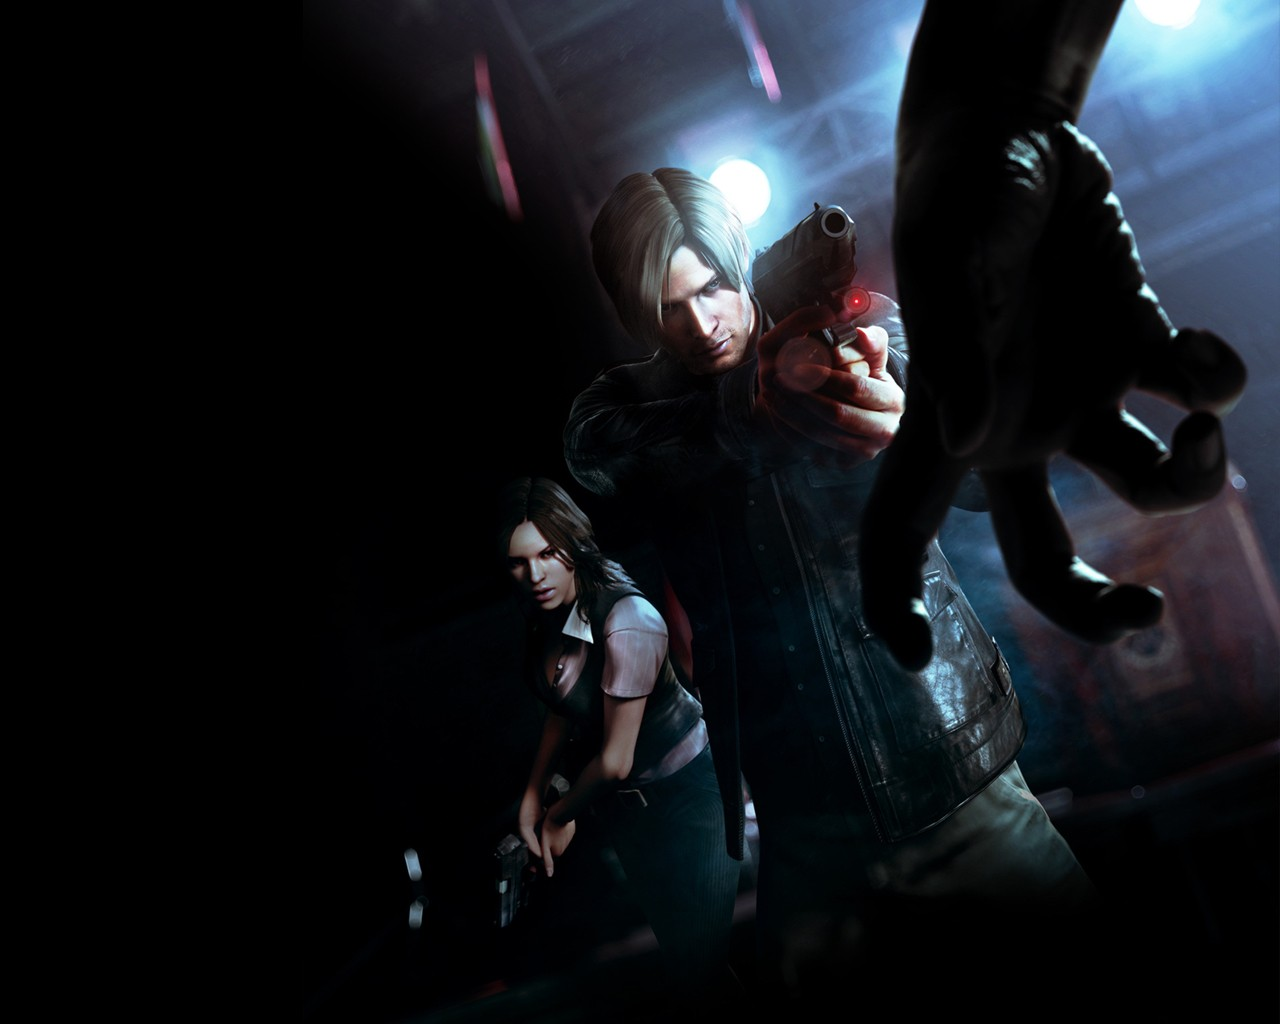 Pic New Posts Resident Evil 6 Wallpaper Hd 1080p